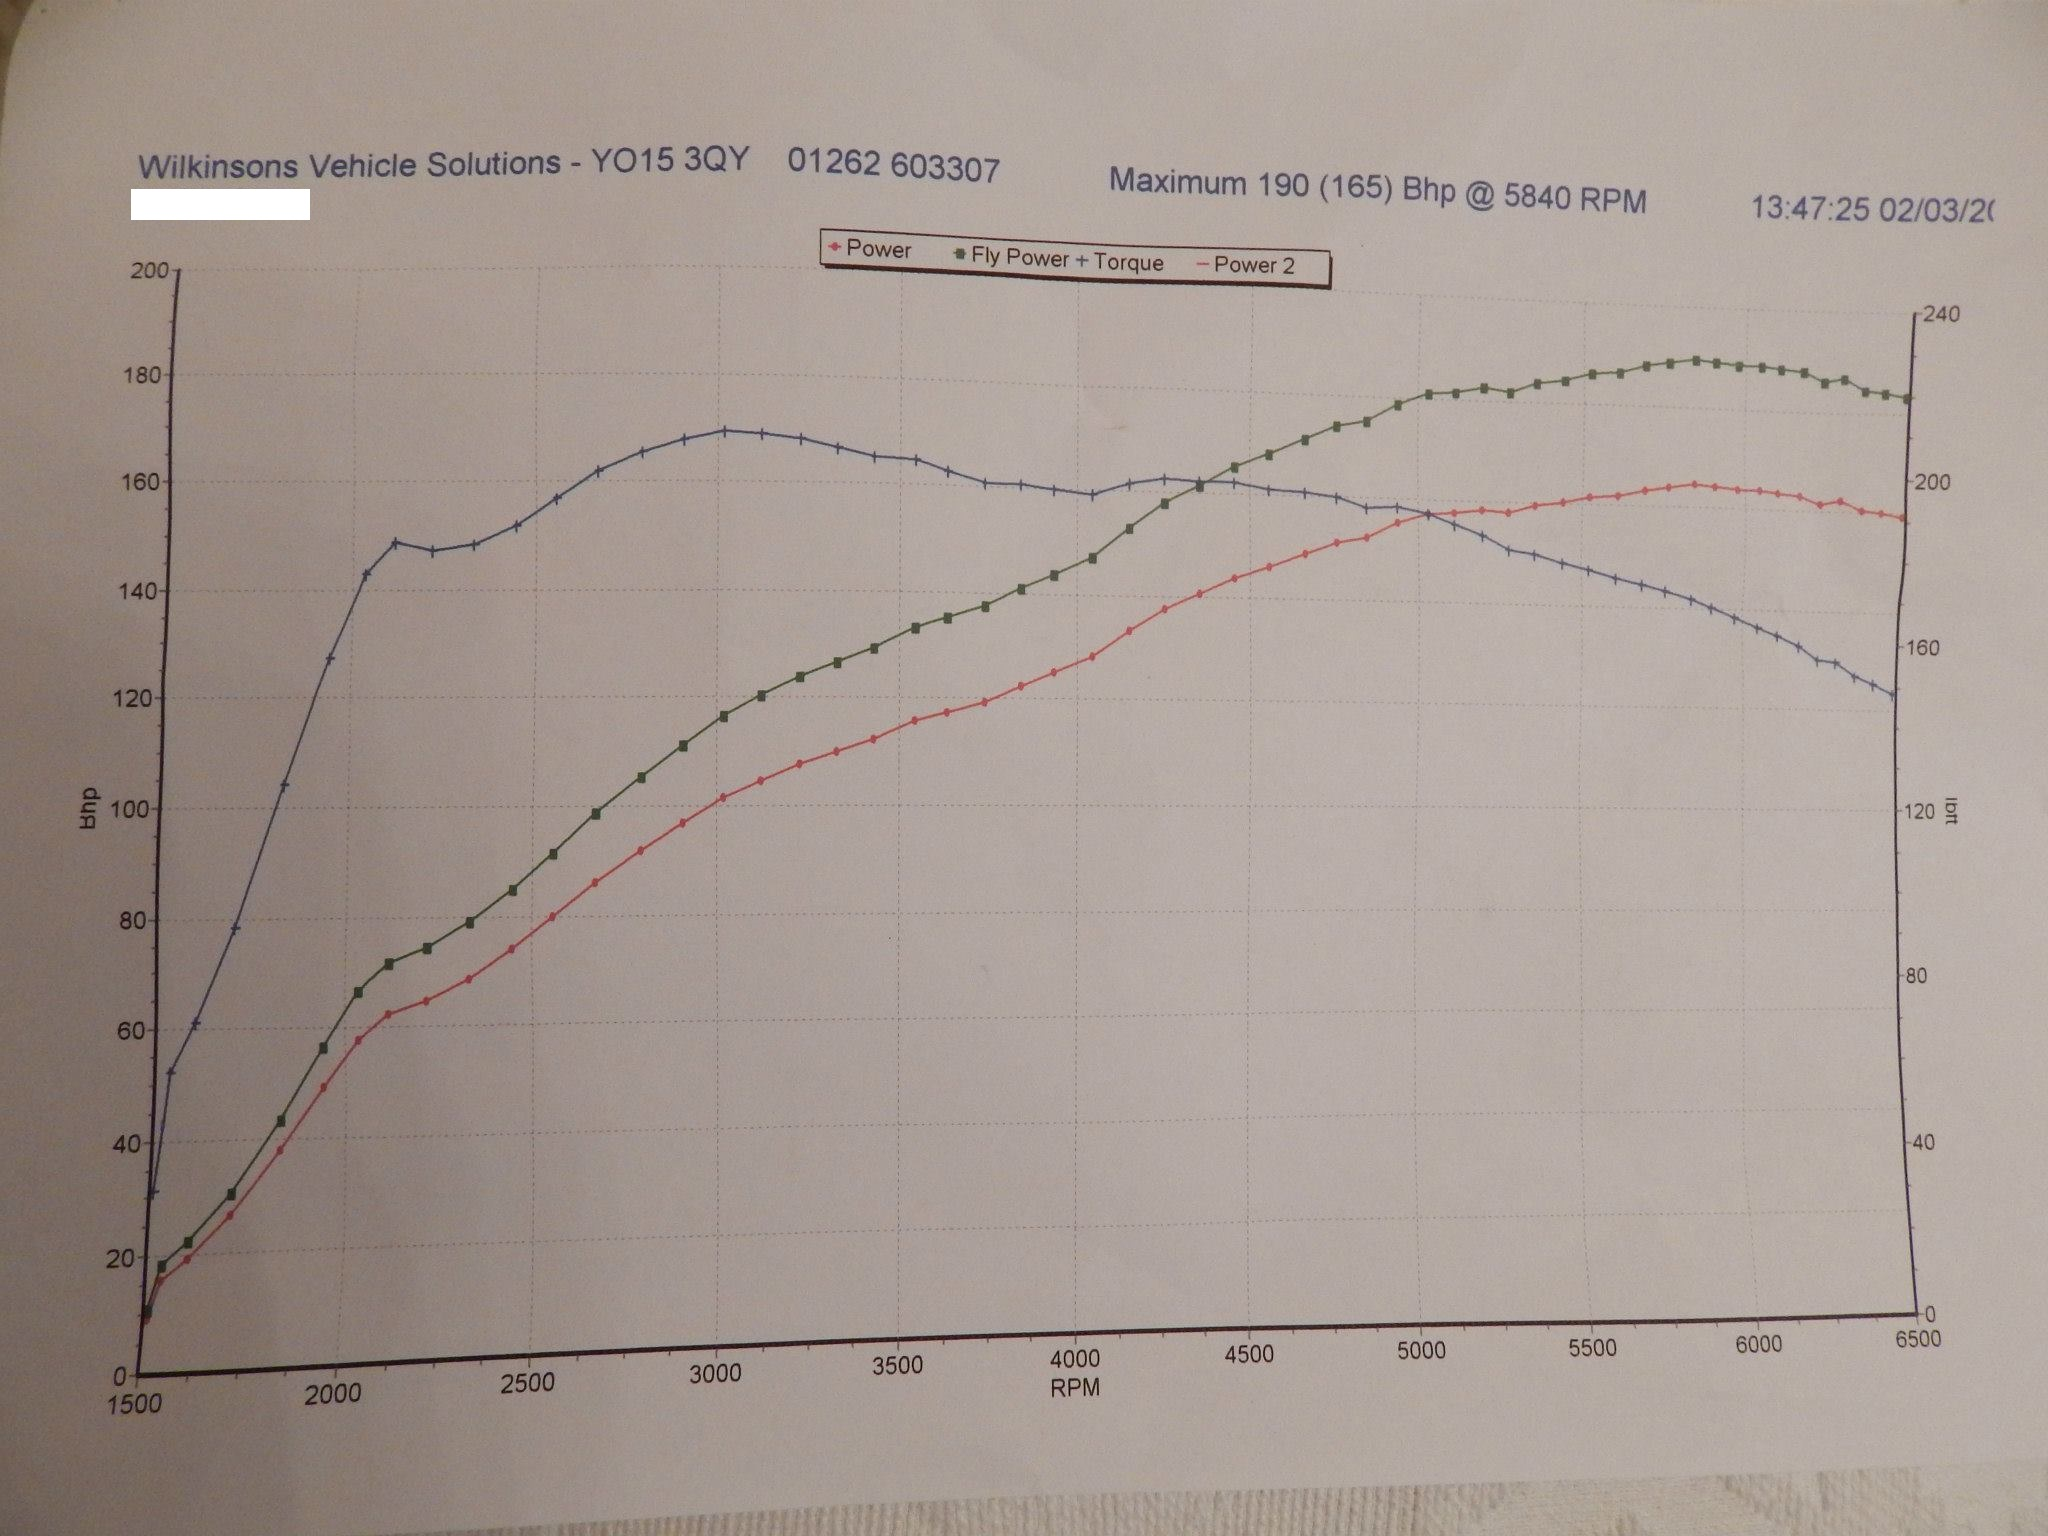 How Do Electric Vehicles Produce Instant Torque Four Stroke Combustion Engine Car Diagram Simple My 14 Has A Better Curve Than That Example Haha